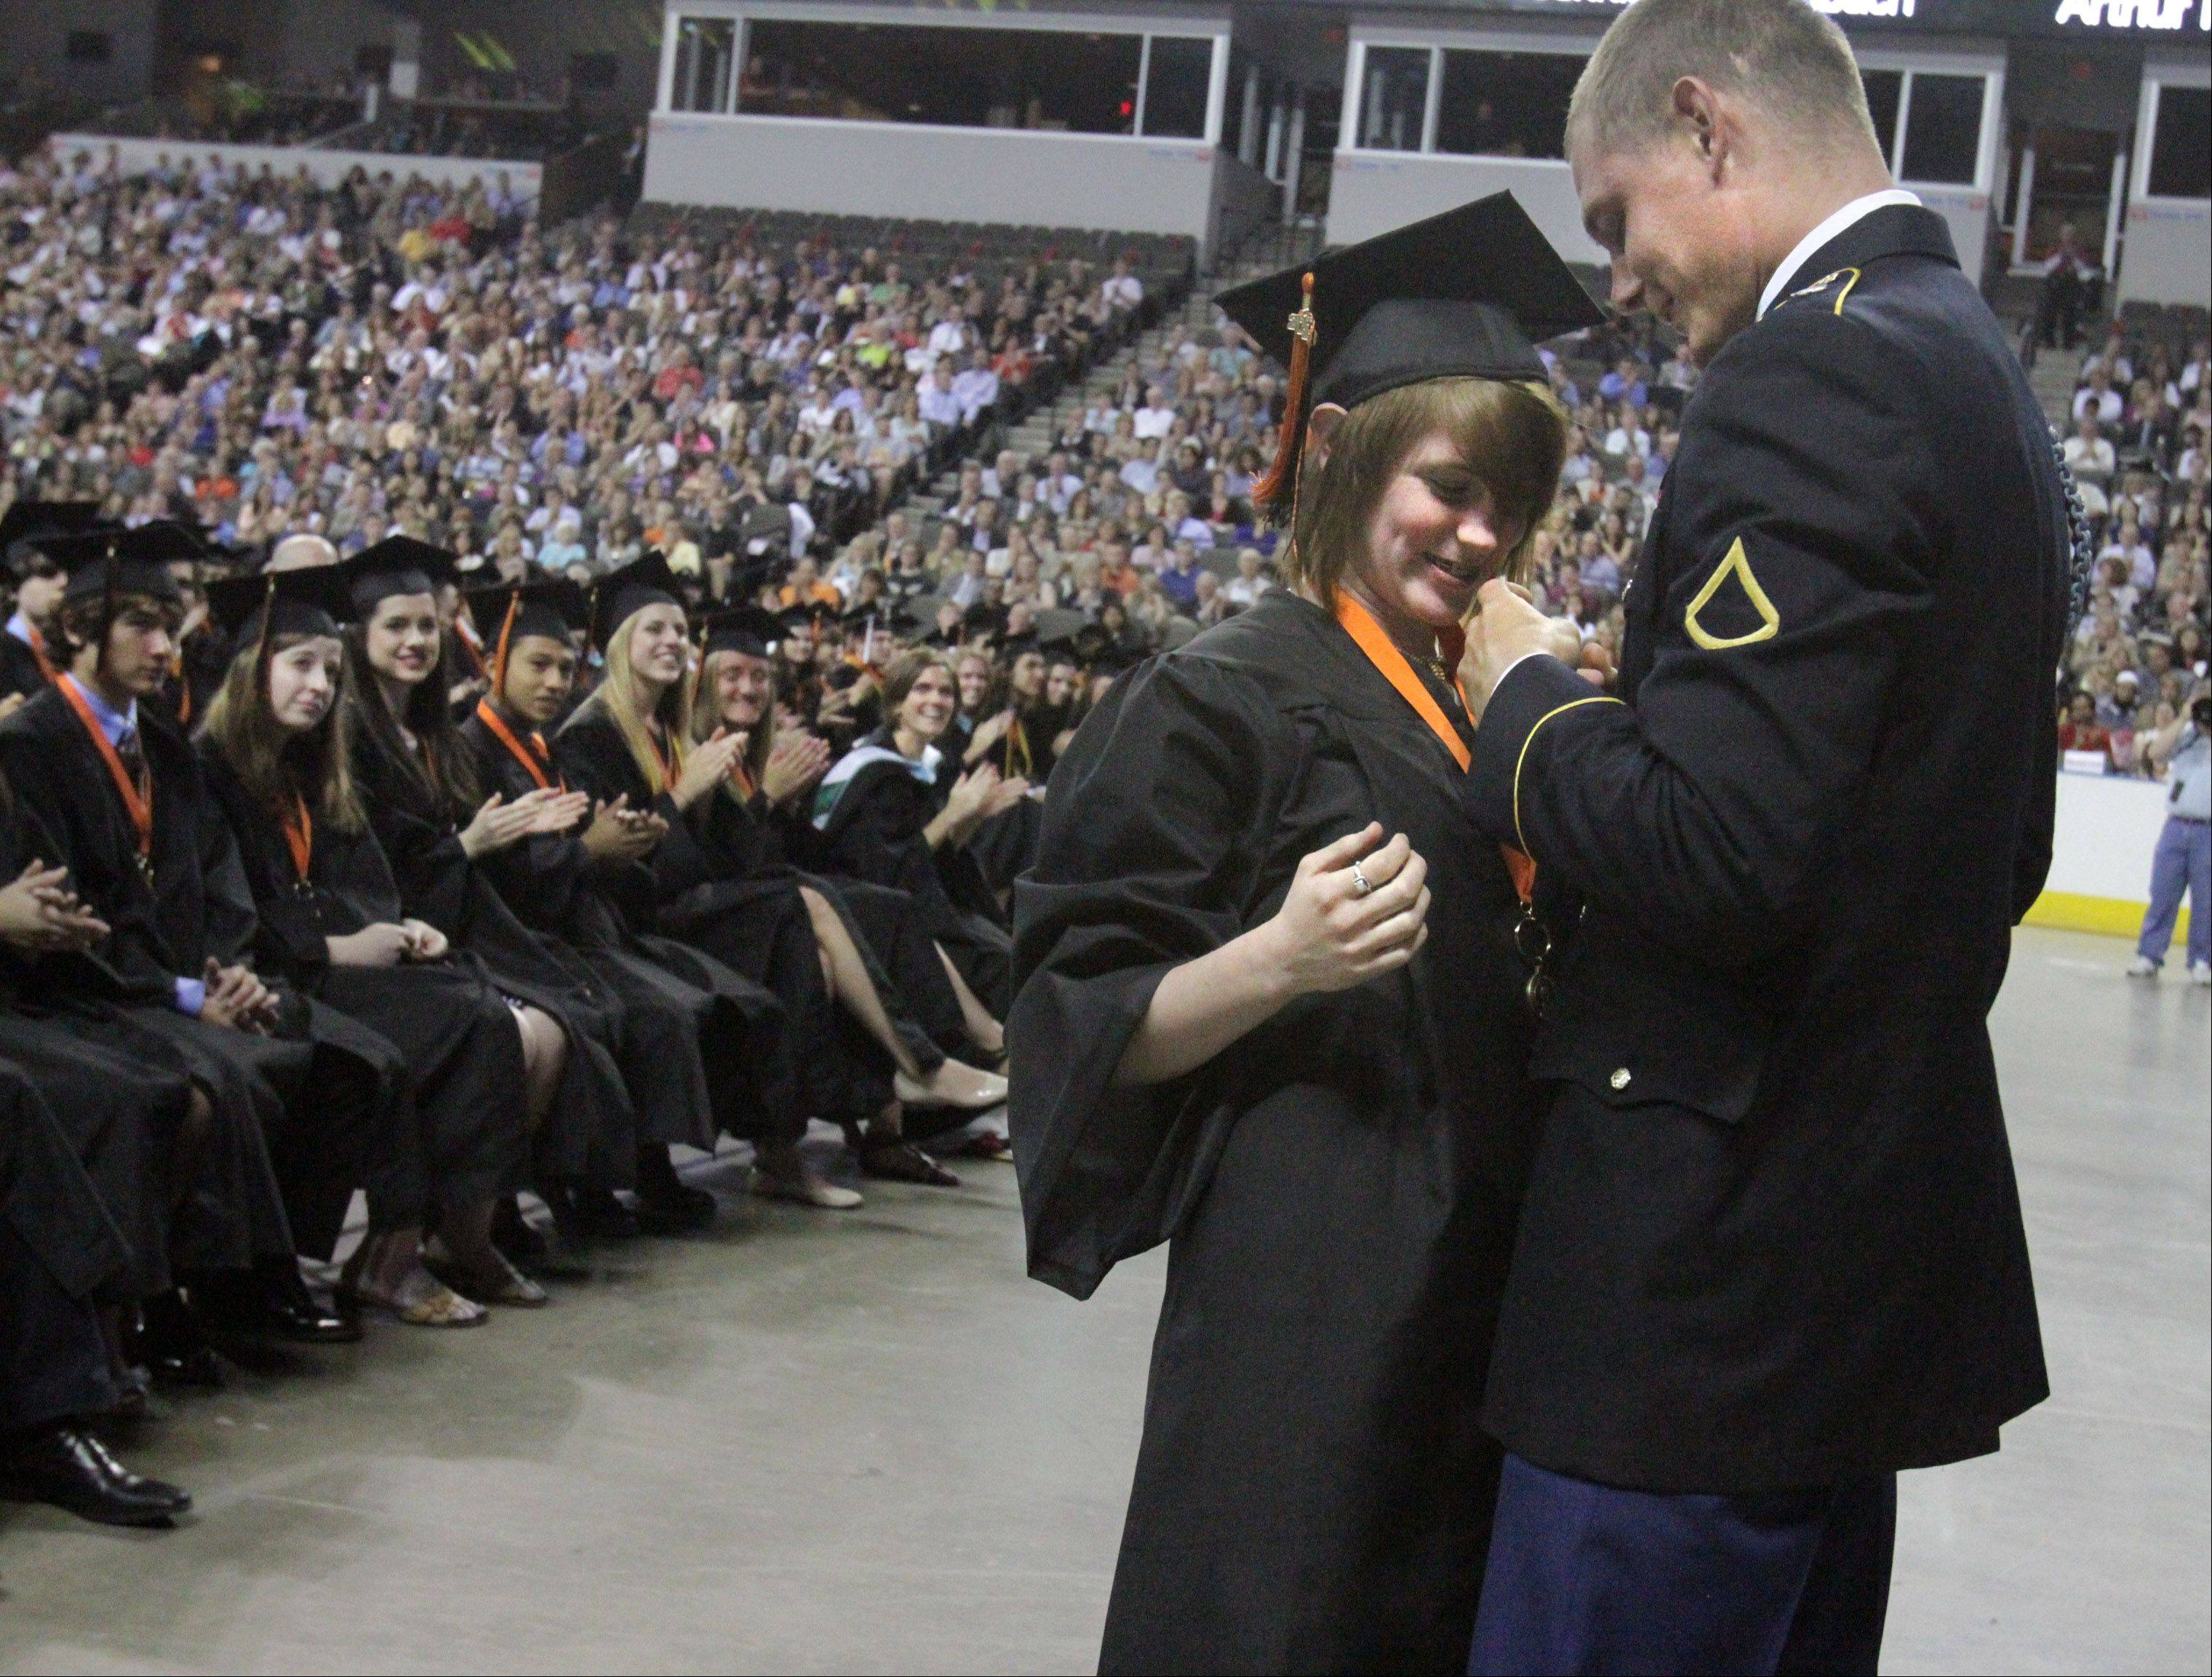 Libertyville High School graduate Stephanie Allen is surprised during the middle of the school's graduation ceremony by her brother 2011 graduate, PFC David Allen who is stationed at Fort Bliss in El Paso, Texas on Friday, June 7 at the Sears Centre in Hoffman Estates.